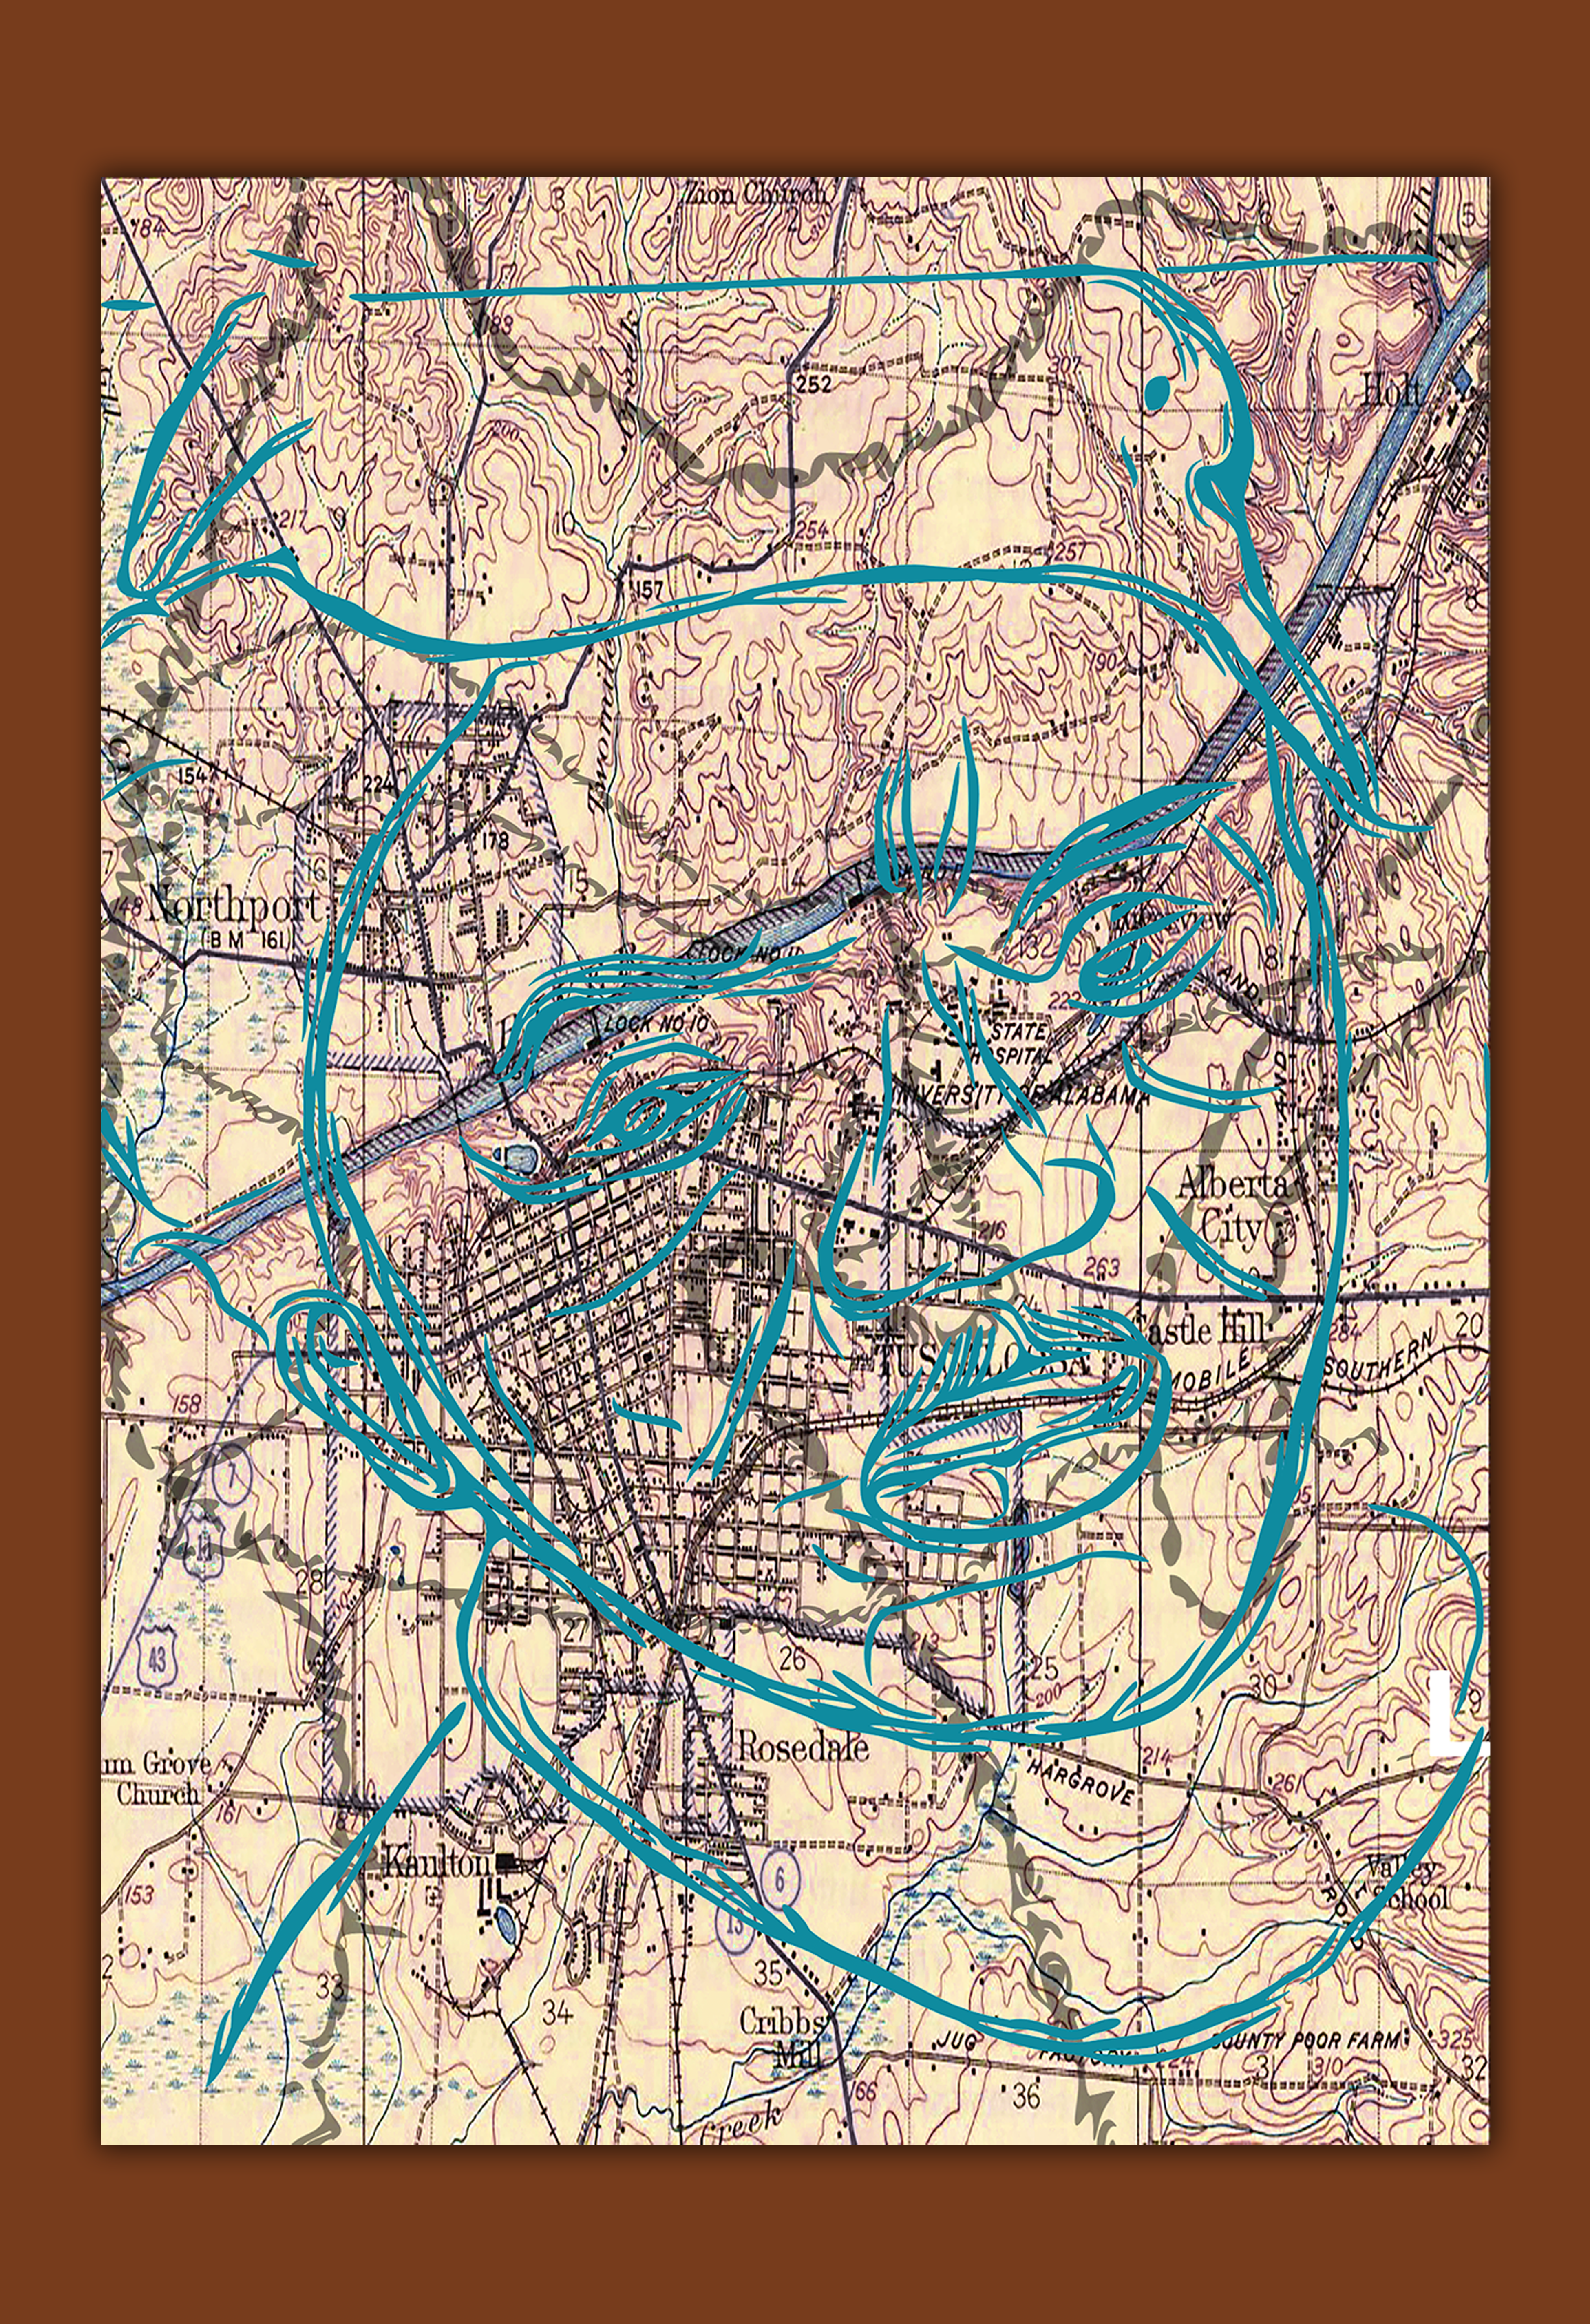 Portrait of my Grandfather, over print sketch over the map of Tuscaloosa, Alabama. My fathers home city map.